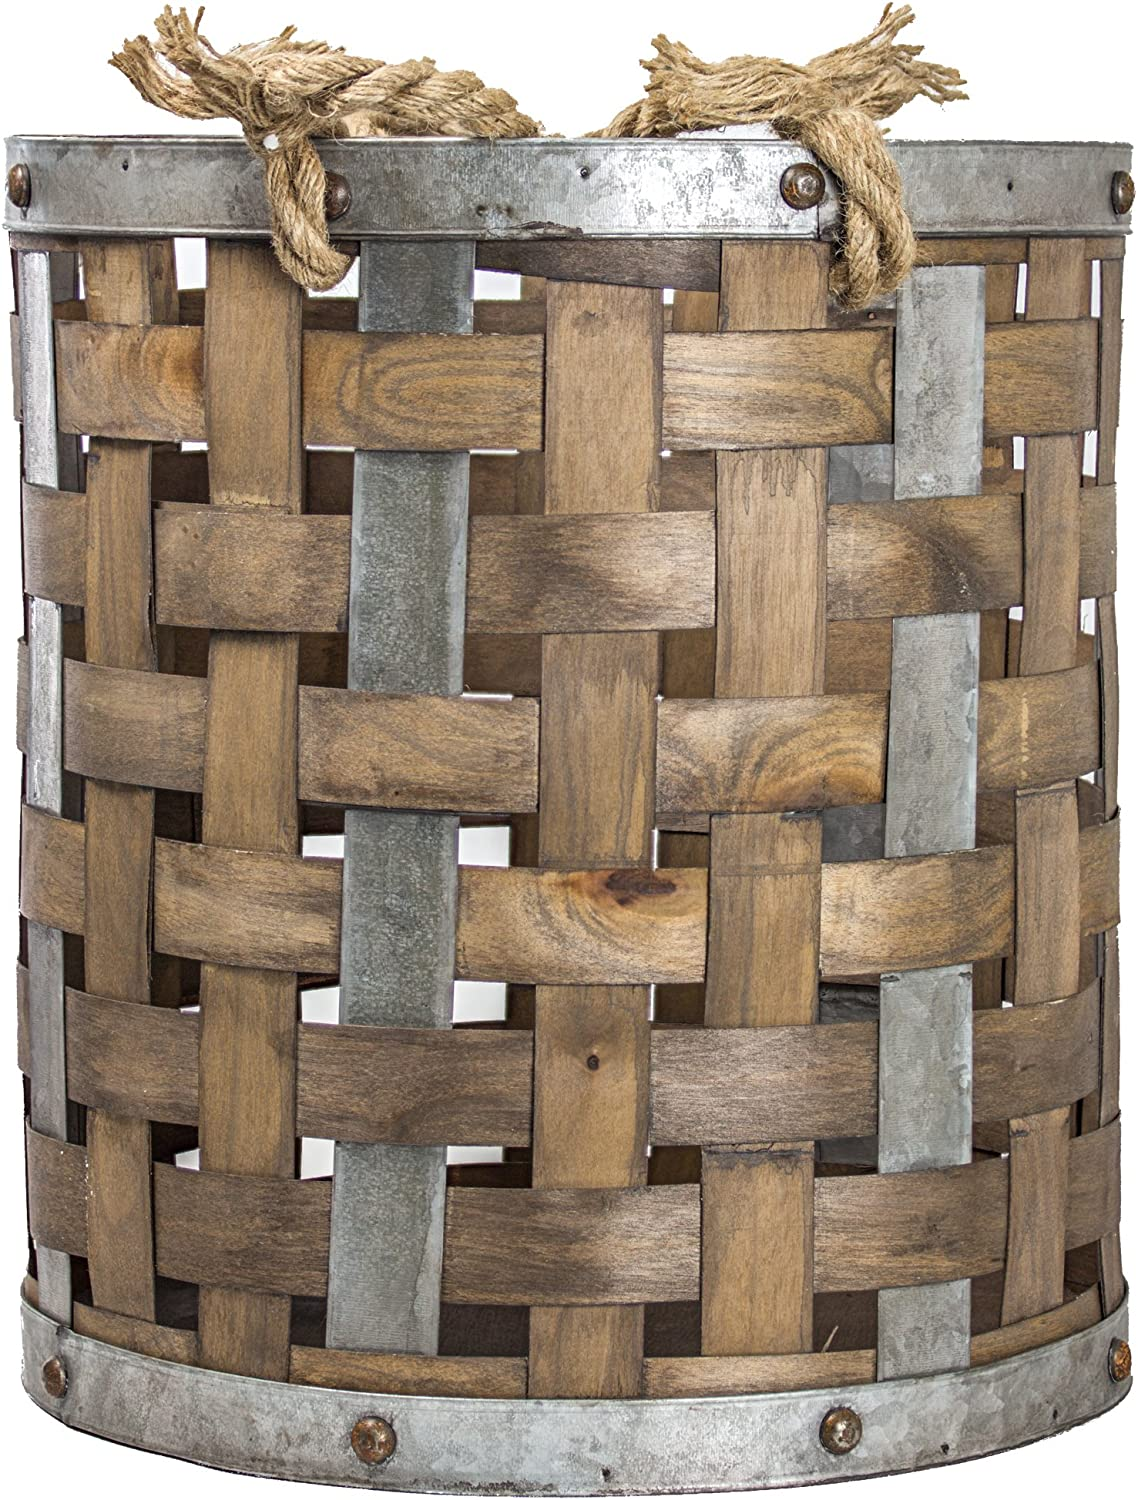 American Art Décor Rustic Bamboo and Metal Storage Basket Vintage Country Farmhouse Decor (Small)